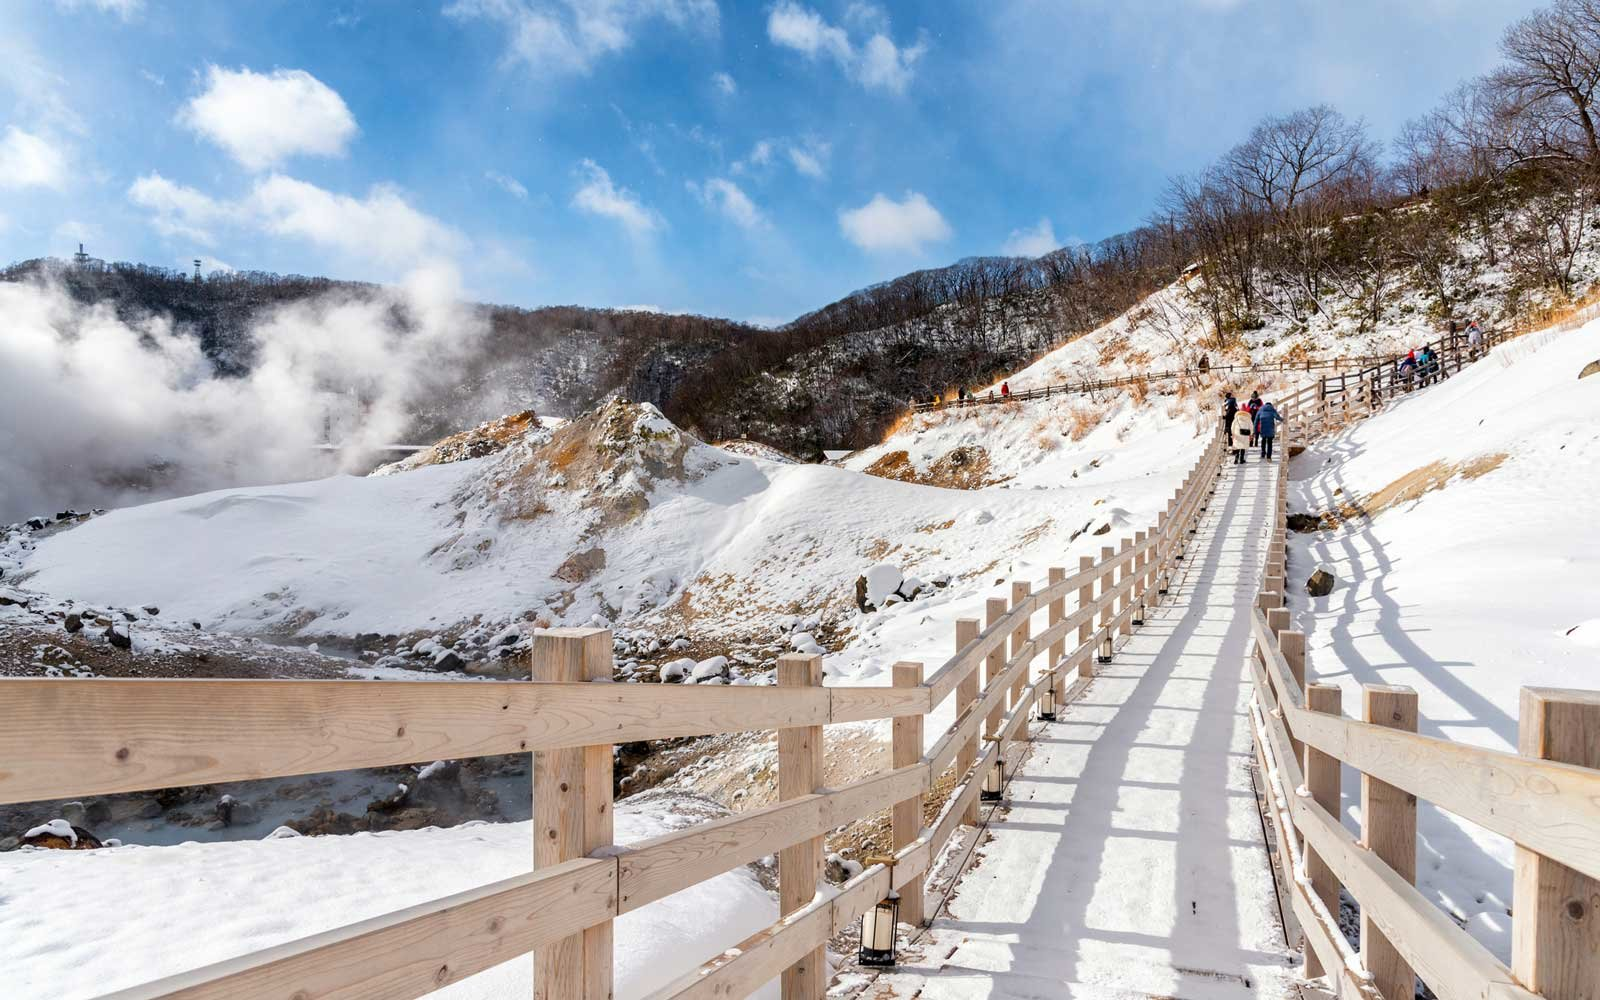 Hell Valley at Noboribetsu Onsen town, hot steam vents, sulfurous streams and other volcanic activity, hot spring waters, Hokkaido, Japan.